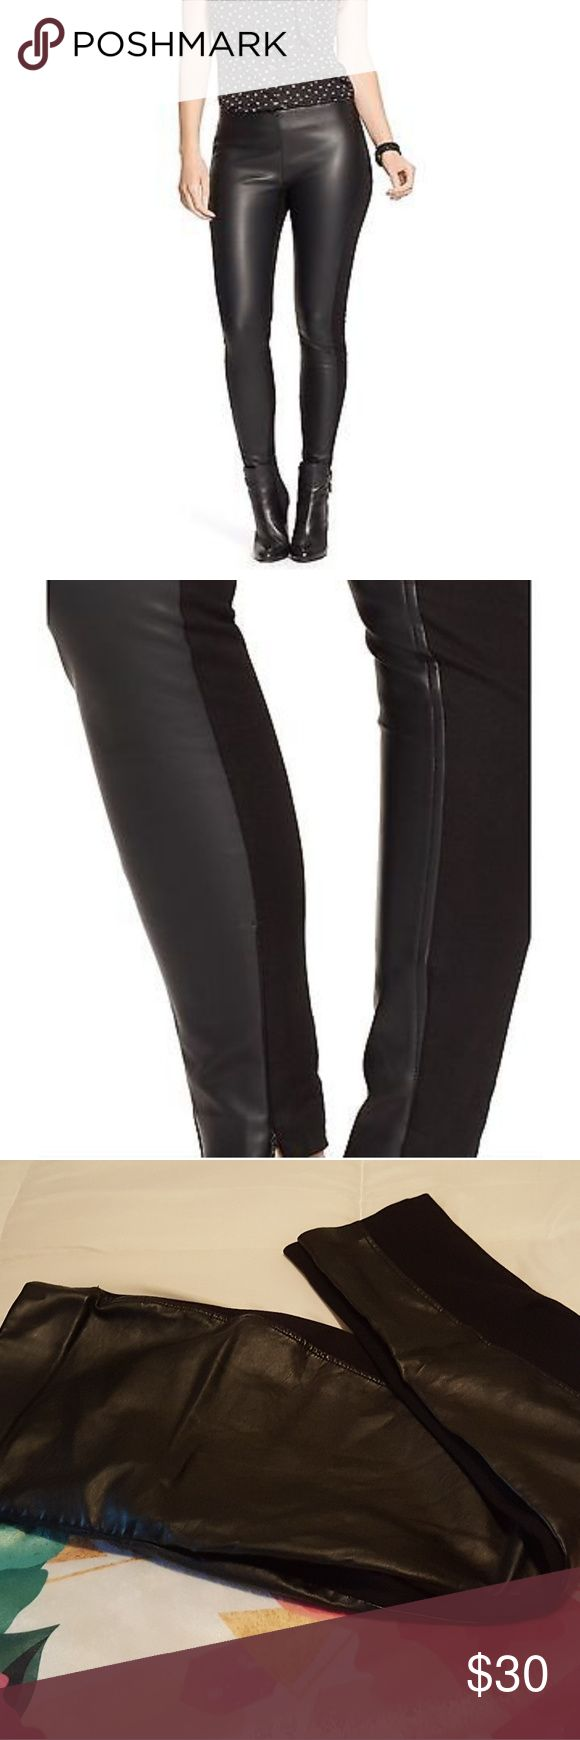 Ralph Lauren Sexy Leather Panel Leggings Pants So cute!!! I got so many compliments wearing these! Stretchy thick quality leggings with front panel and ankle zippers. Only worn twice.  In excellent condition, no flaws to note.  Size 14 petite, but I listed them as 14 regular because I think they make a really cute cropped pair of pants for a taller person too! Lauren Ralph Lauren Pants